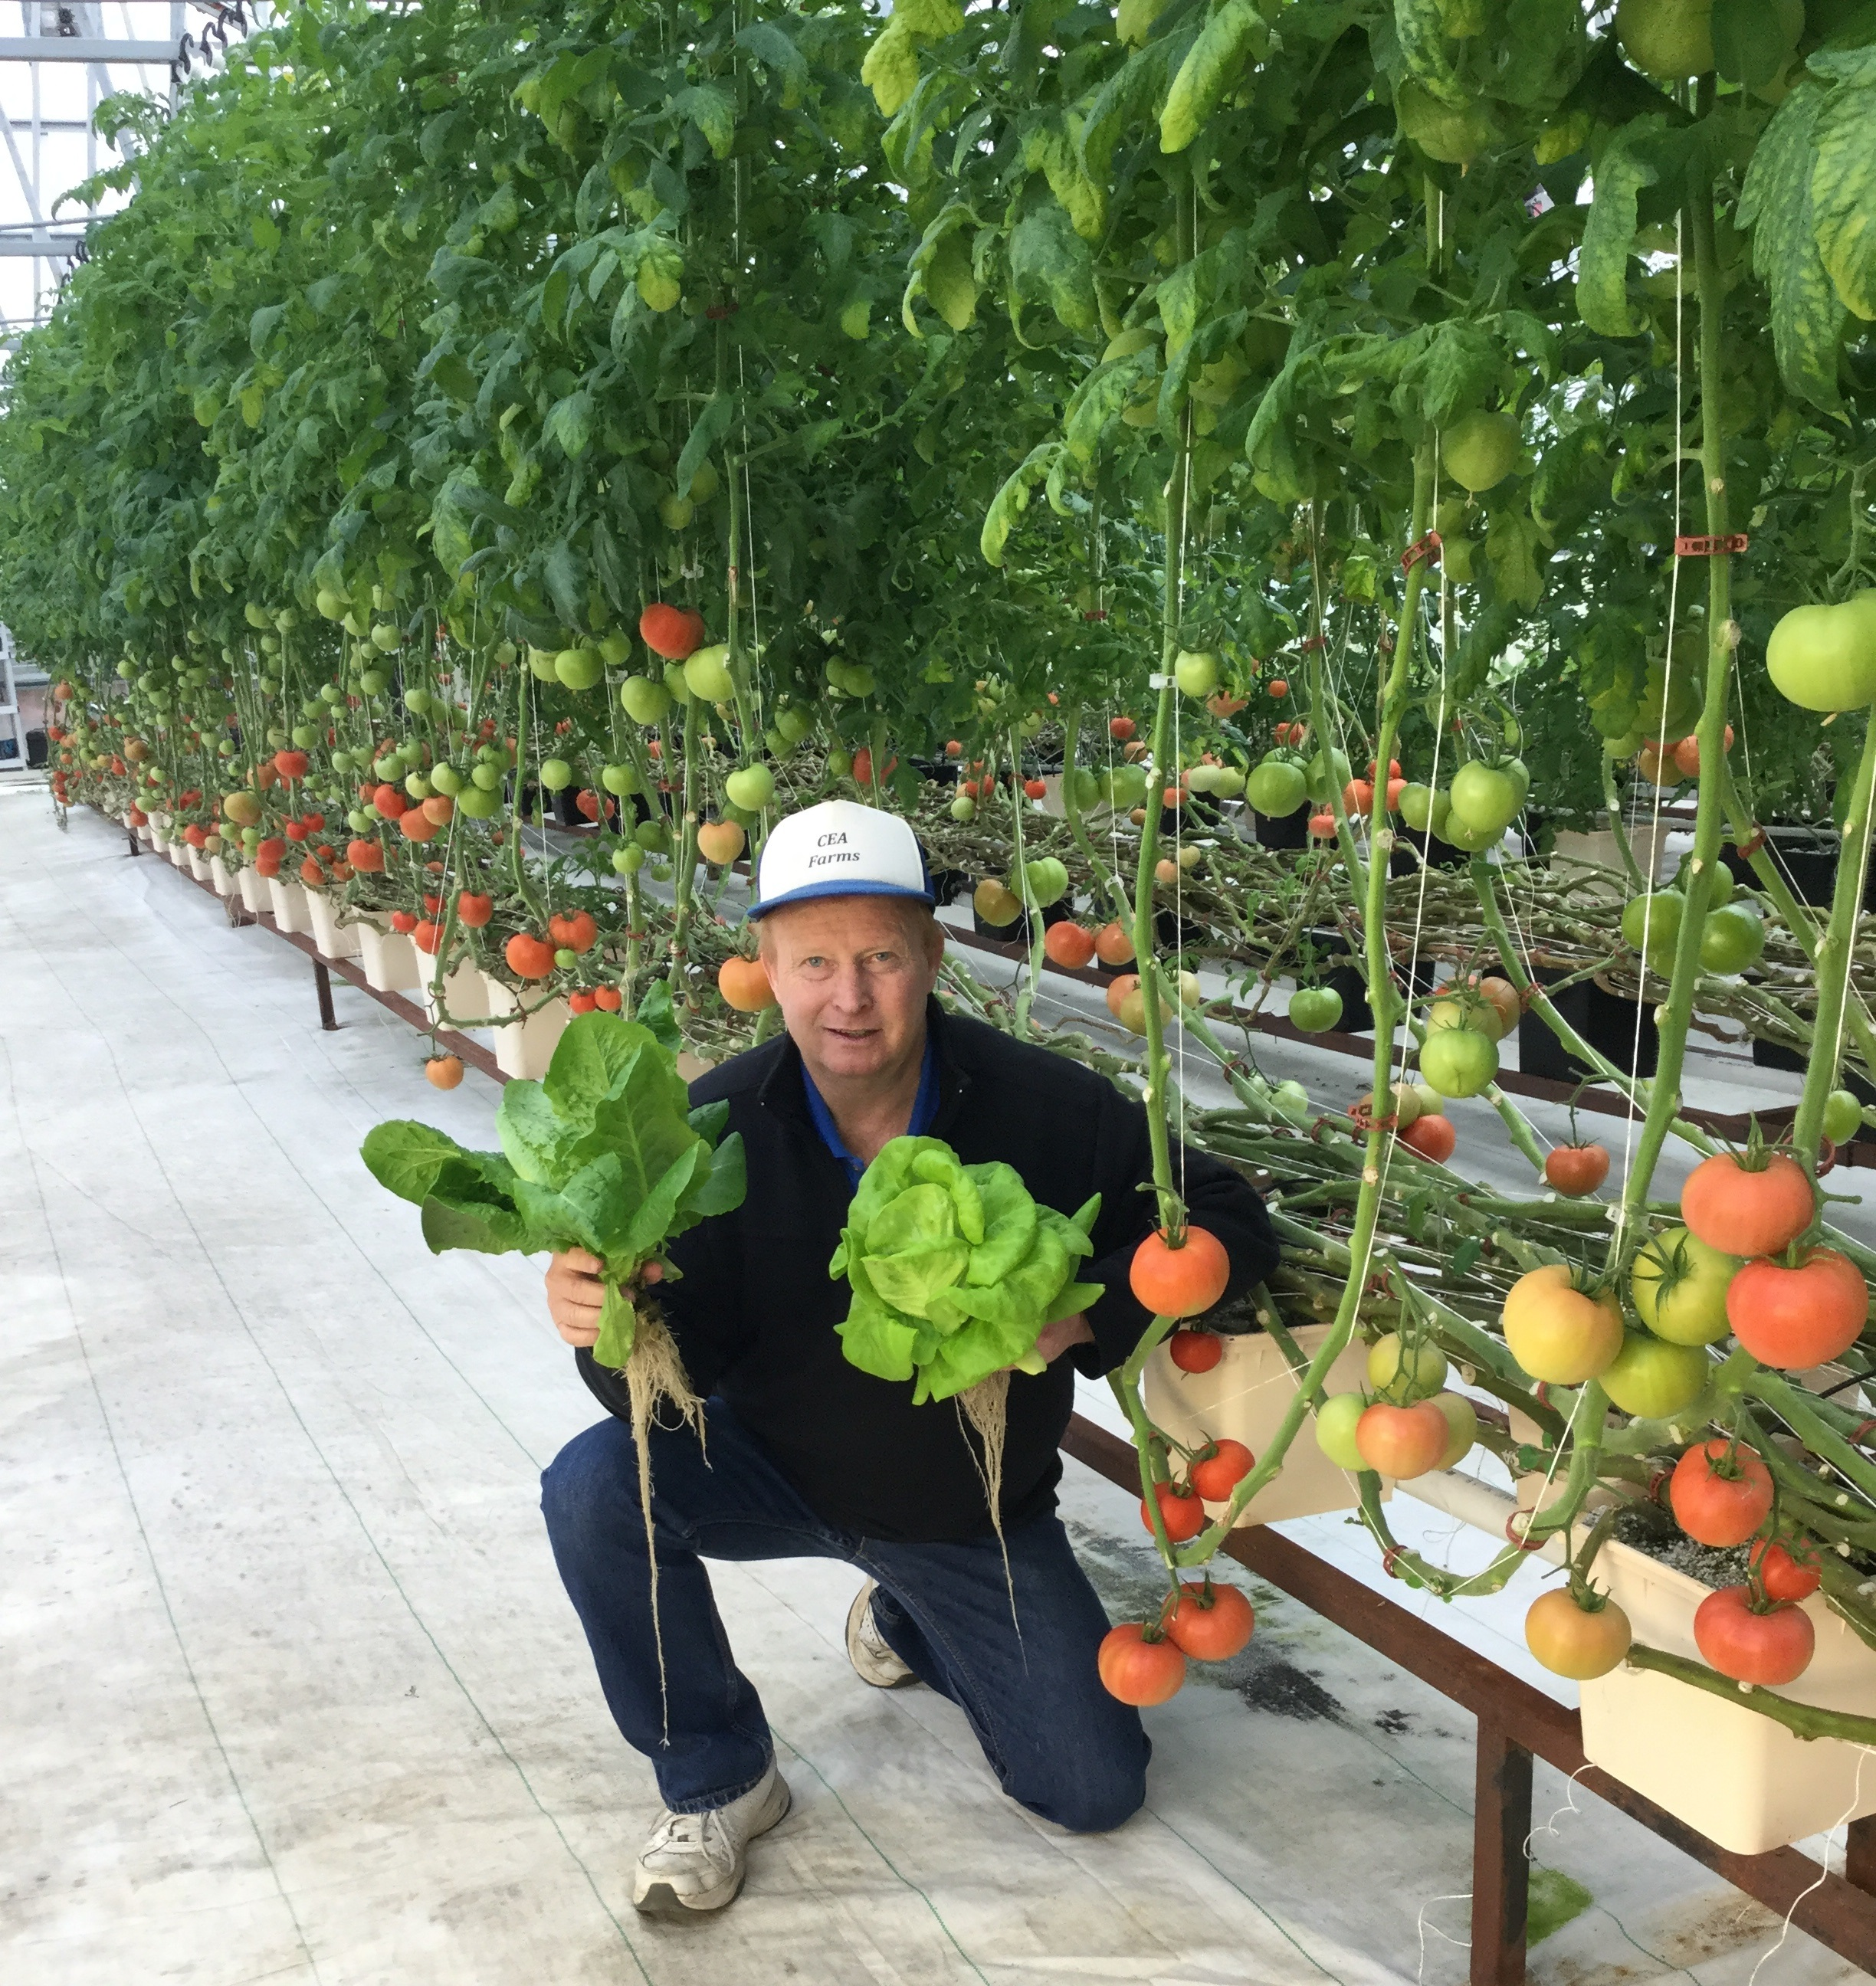 Donald Virts  Protecting our planet, producing safe healthy VERIFIABLE food and finding new ways to enhance a better way of food production is my mission!